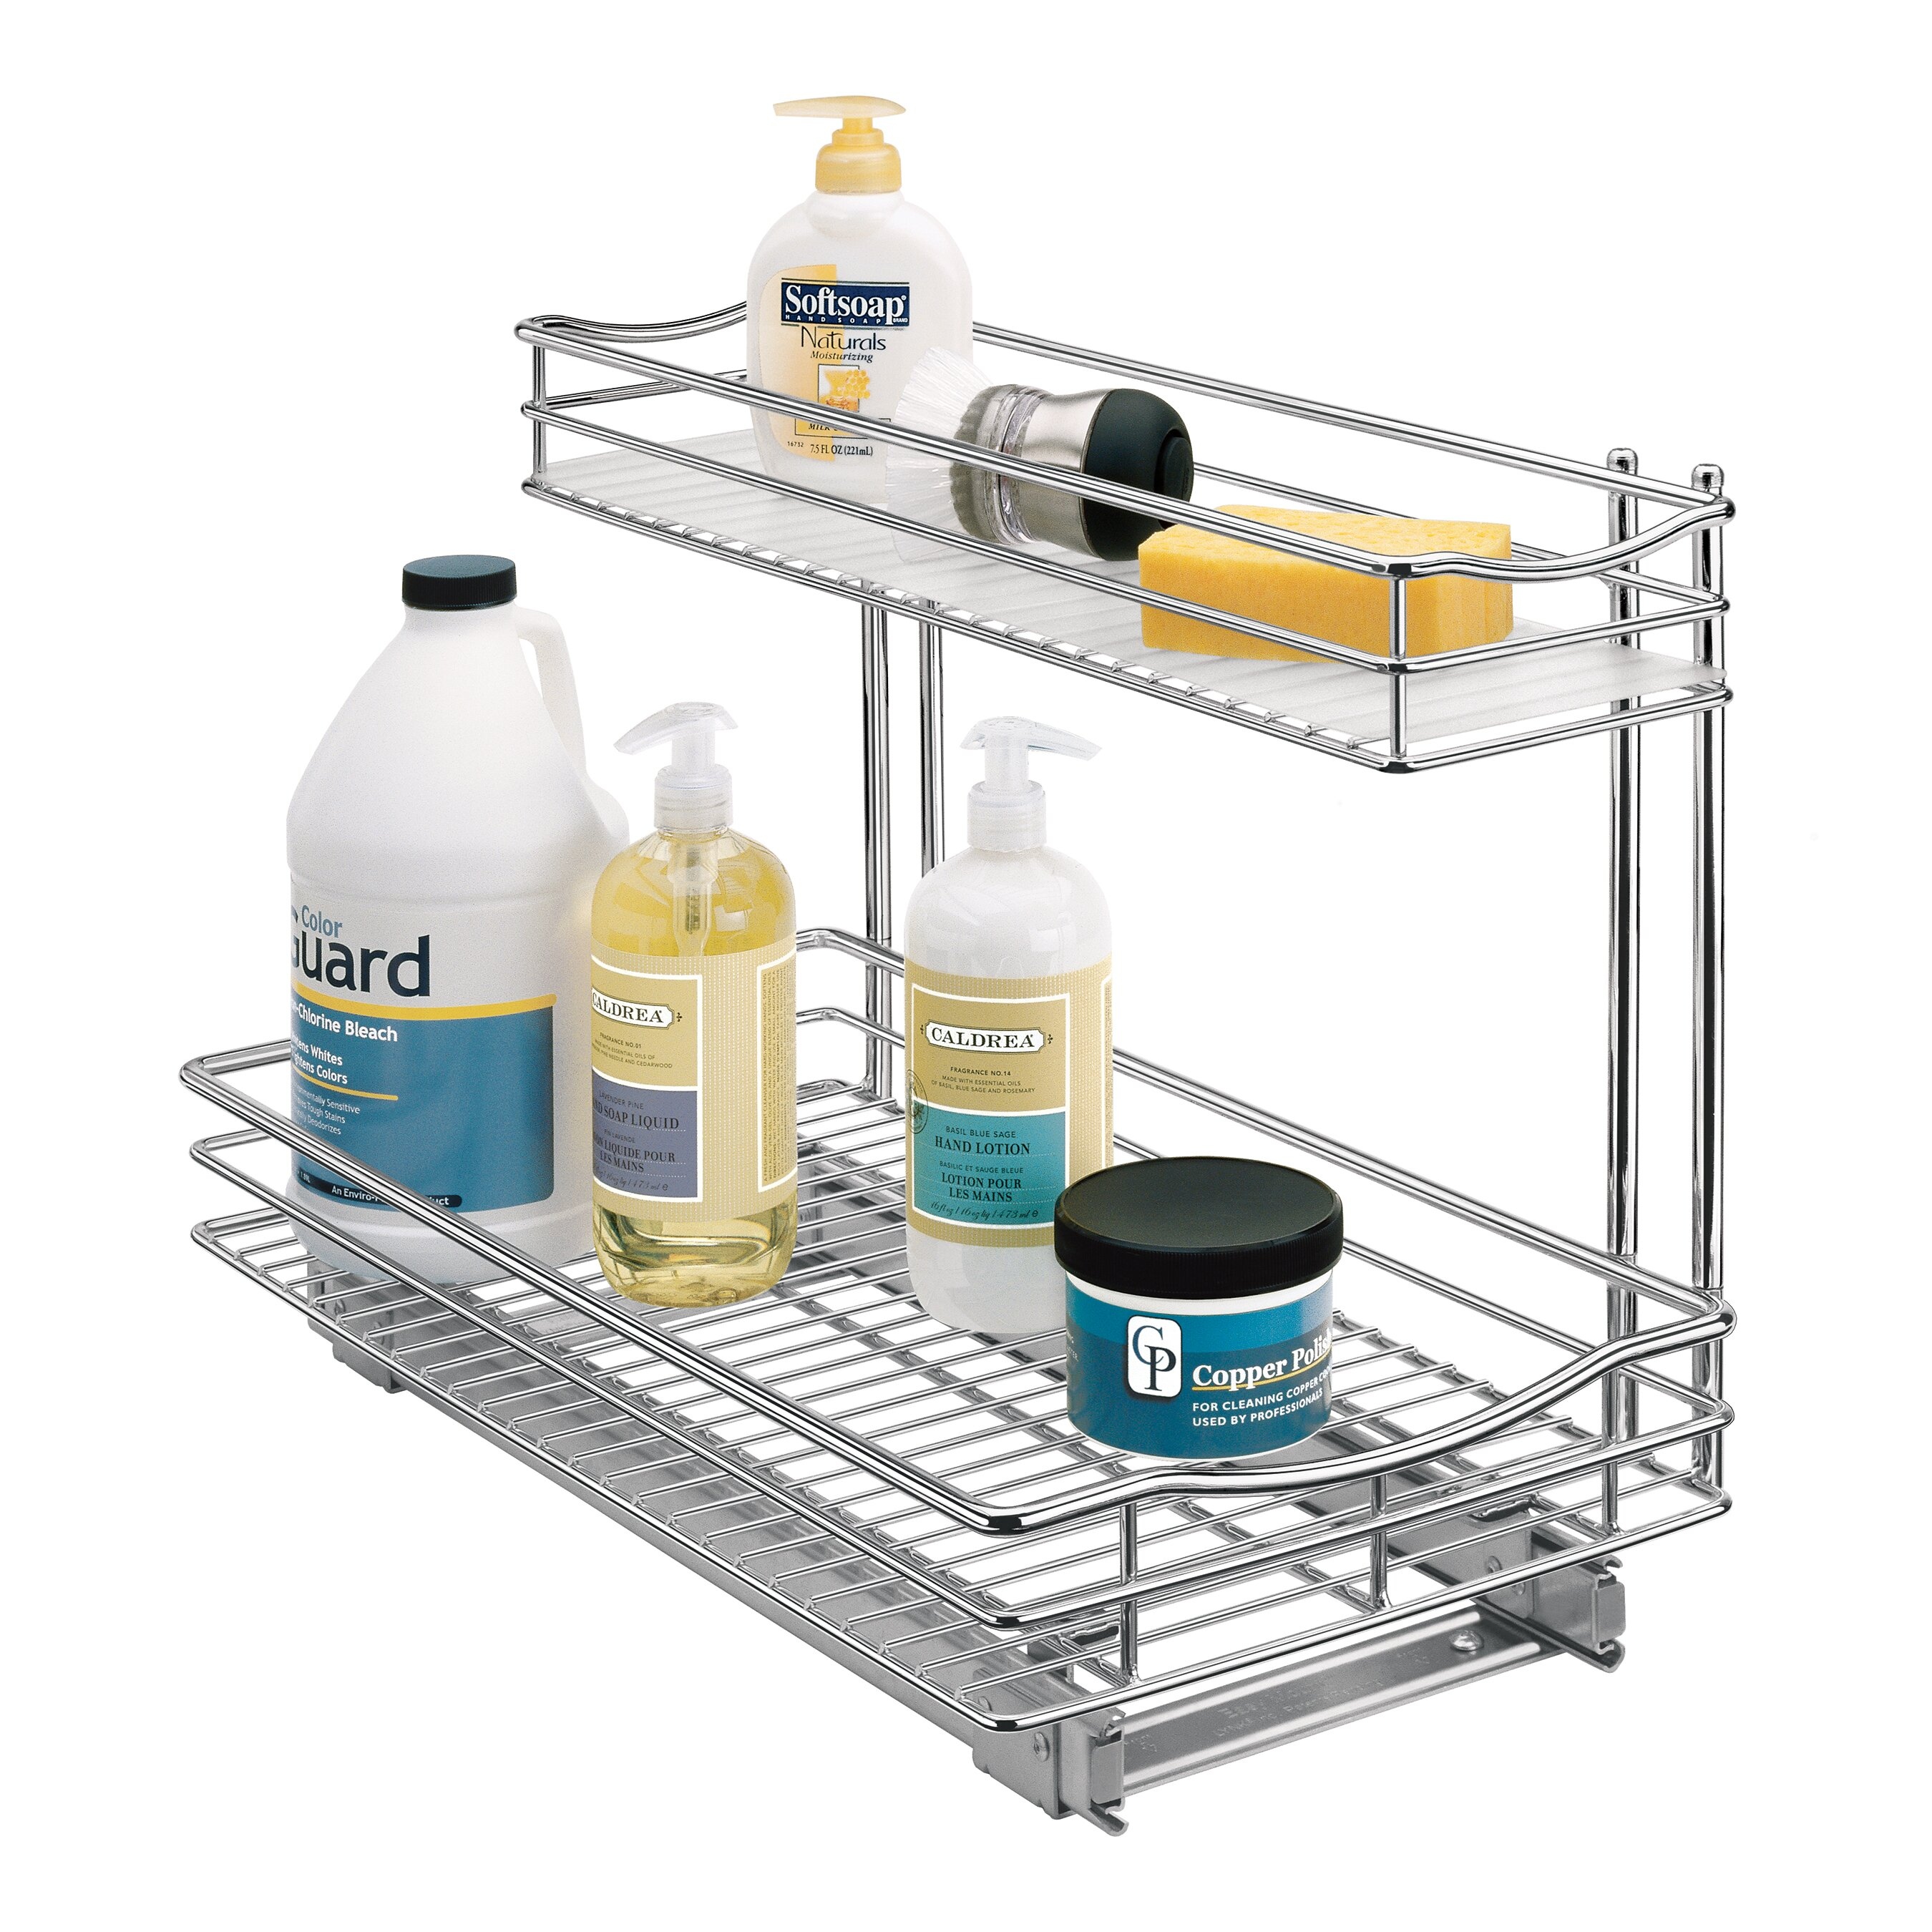 Lynk Roll Out Cabinet Organizer